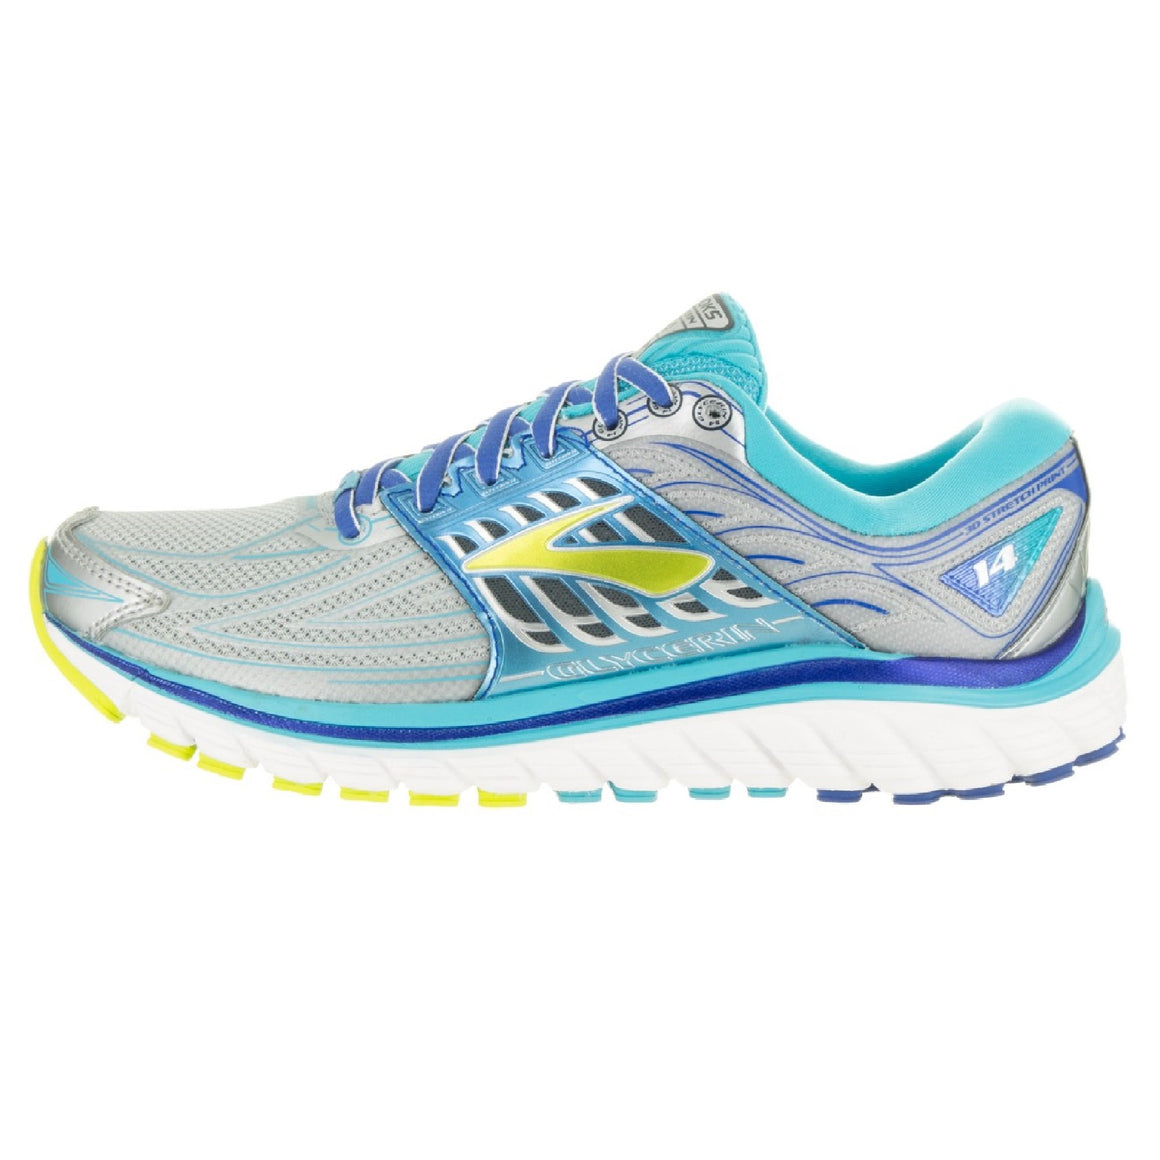 Ladies Brooks Glycerin 14 Running Shoe, Silver/Blue